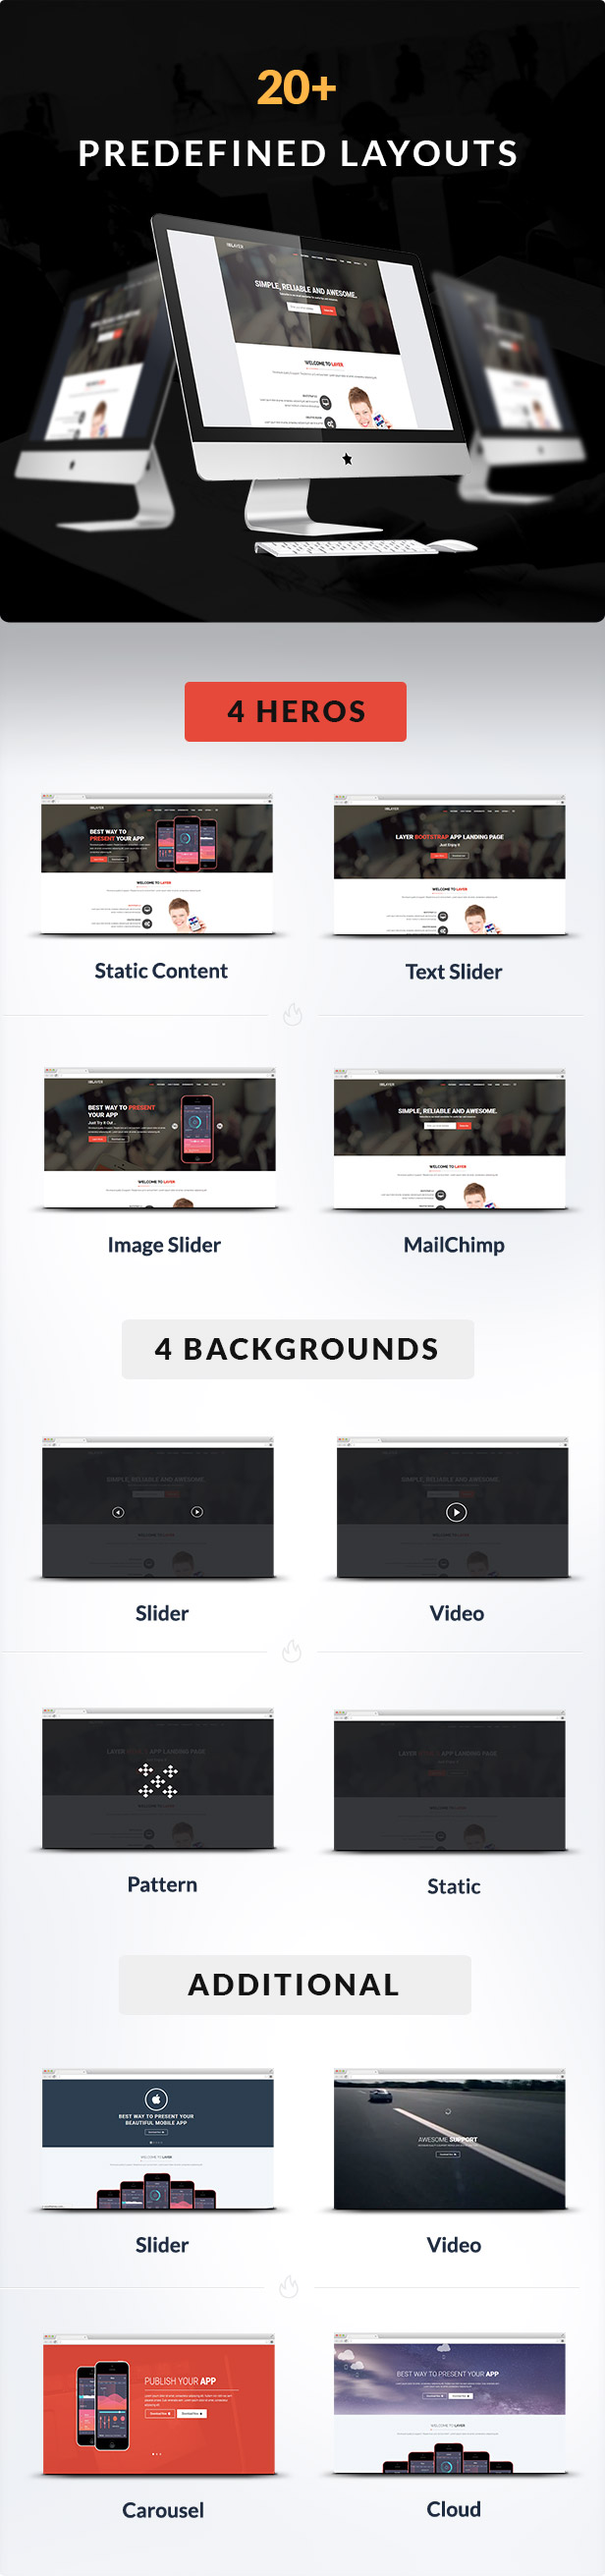 predefined layouts for Layer Responsive App Landing Page